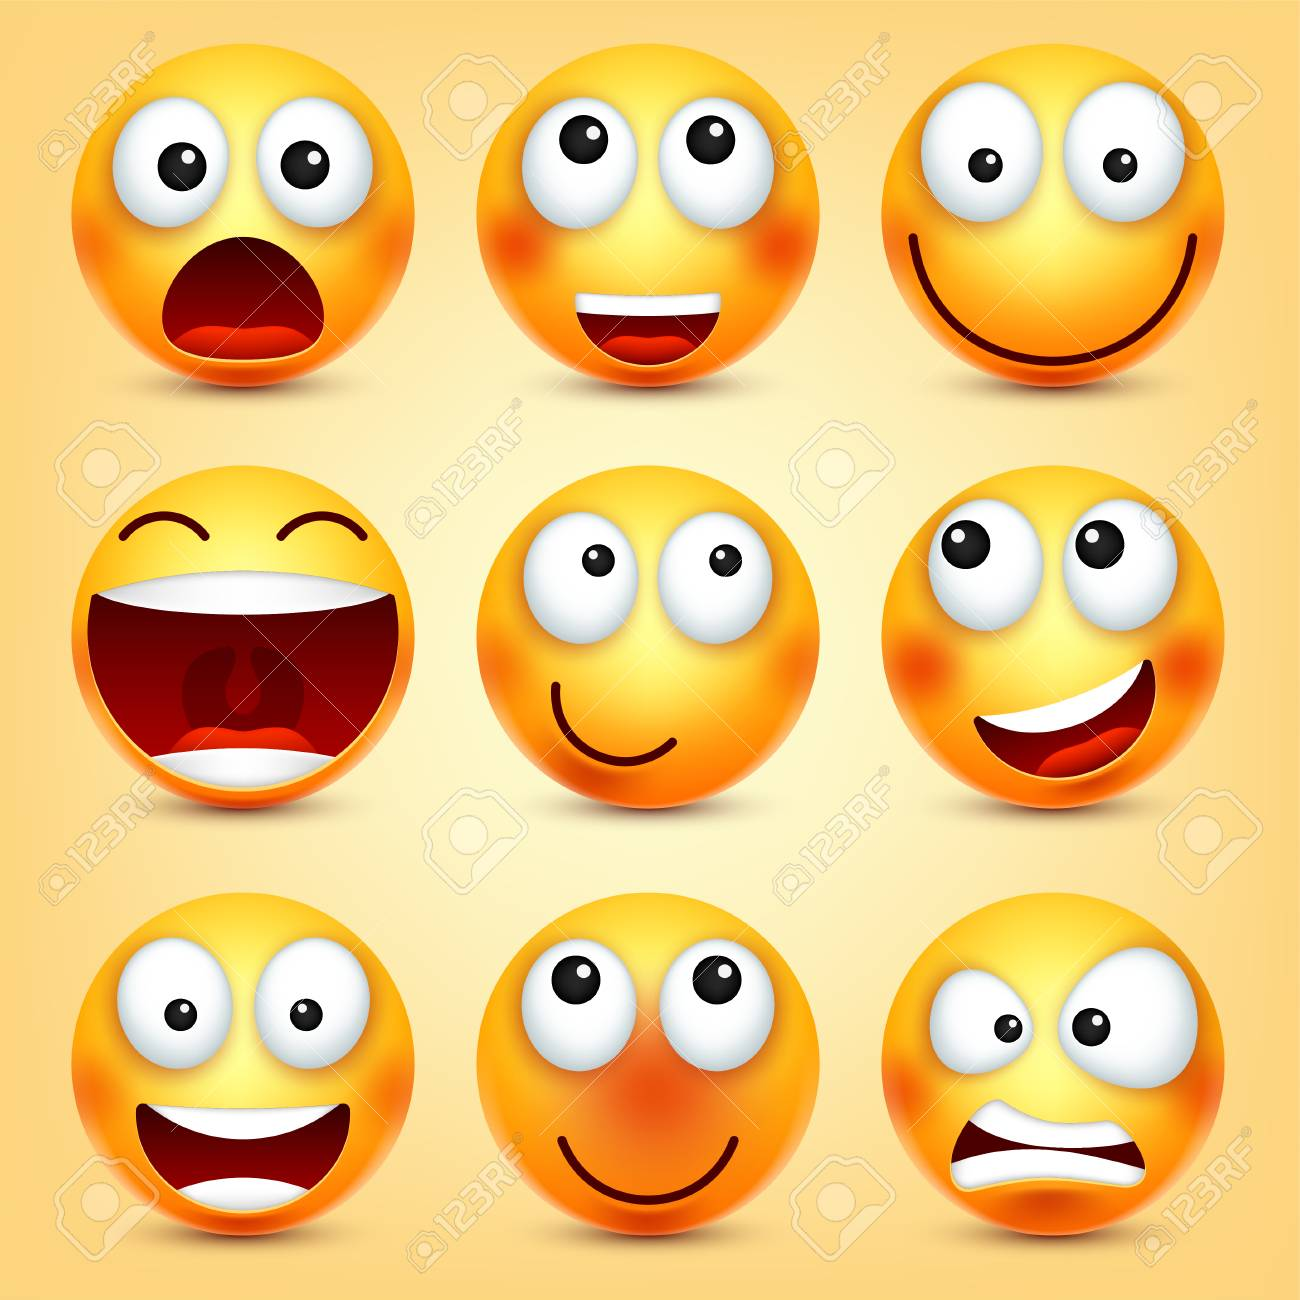 Smiley,emoticons set. Yellow face with emotions. Facial expression. 3d realistic emoji. Funny cartoon character.Mood. Web icon. Vector illustration. - 89855008